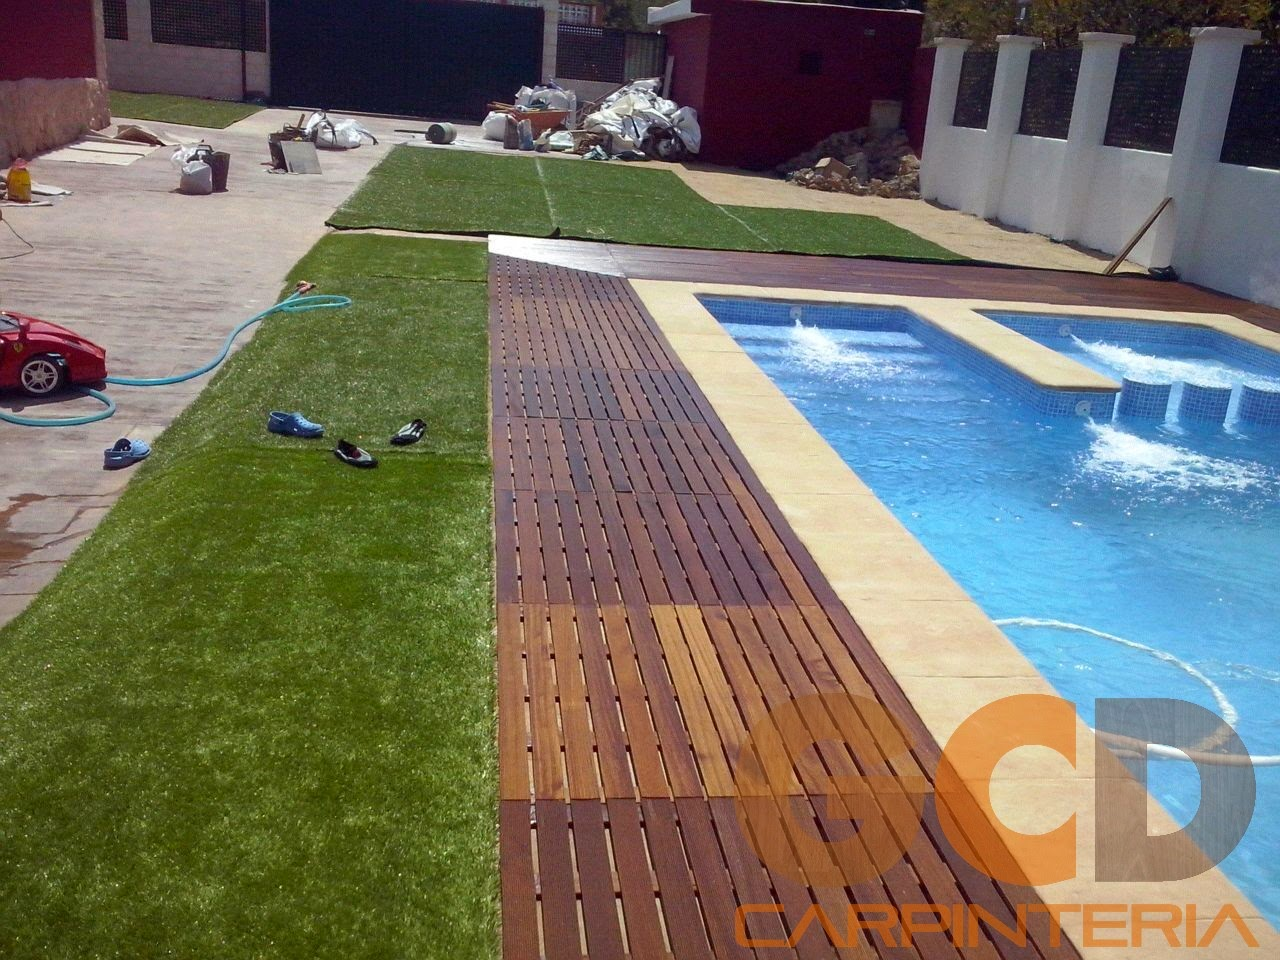 Suelos de madera para terrazas y piscinas - GCD Carpintería - 661 ...